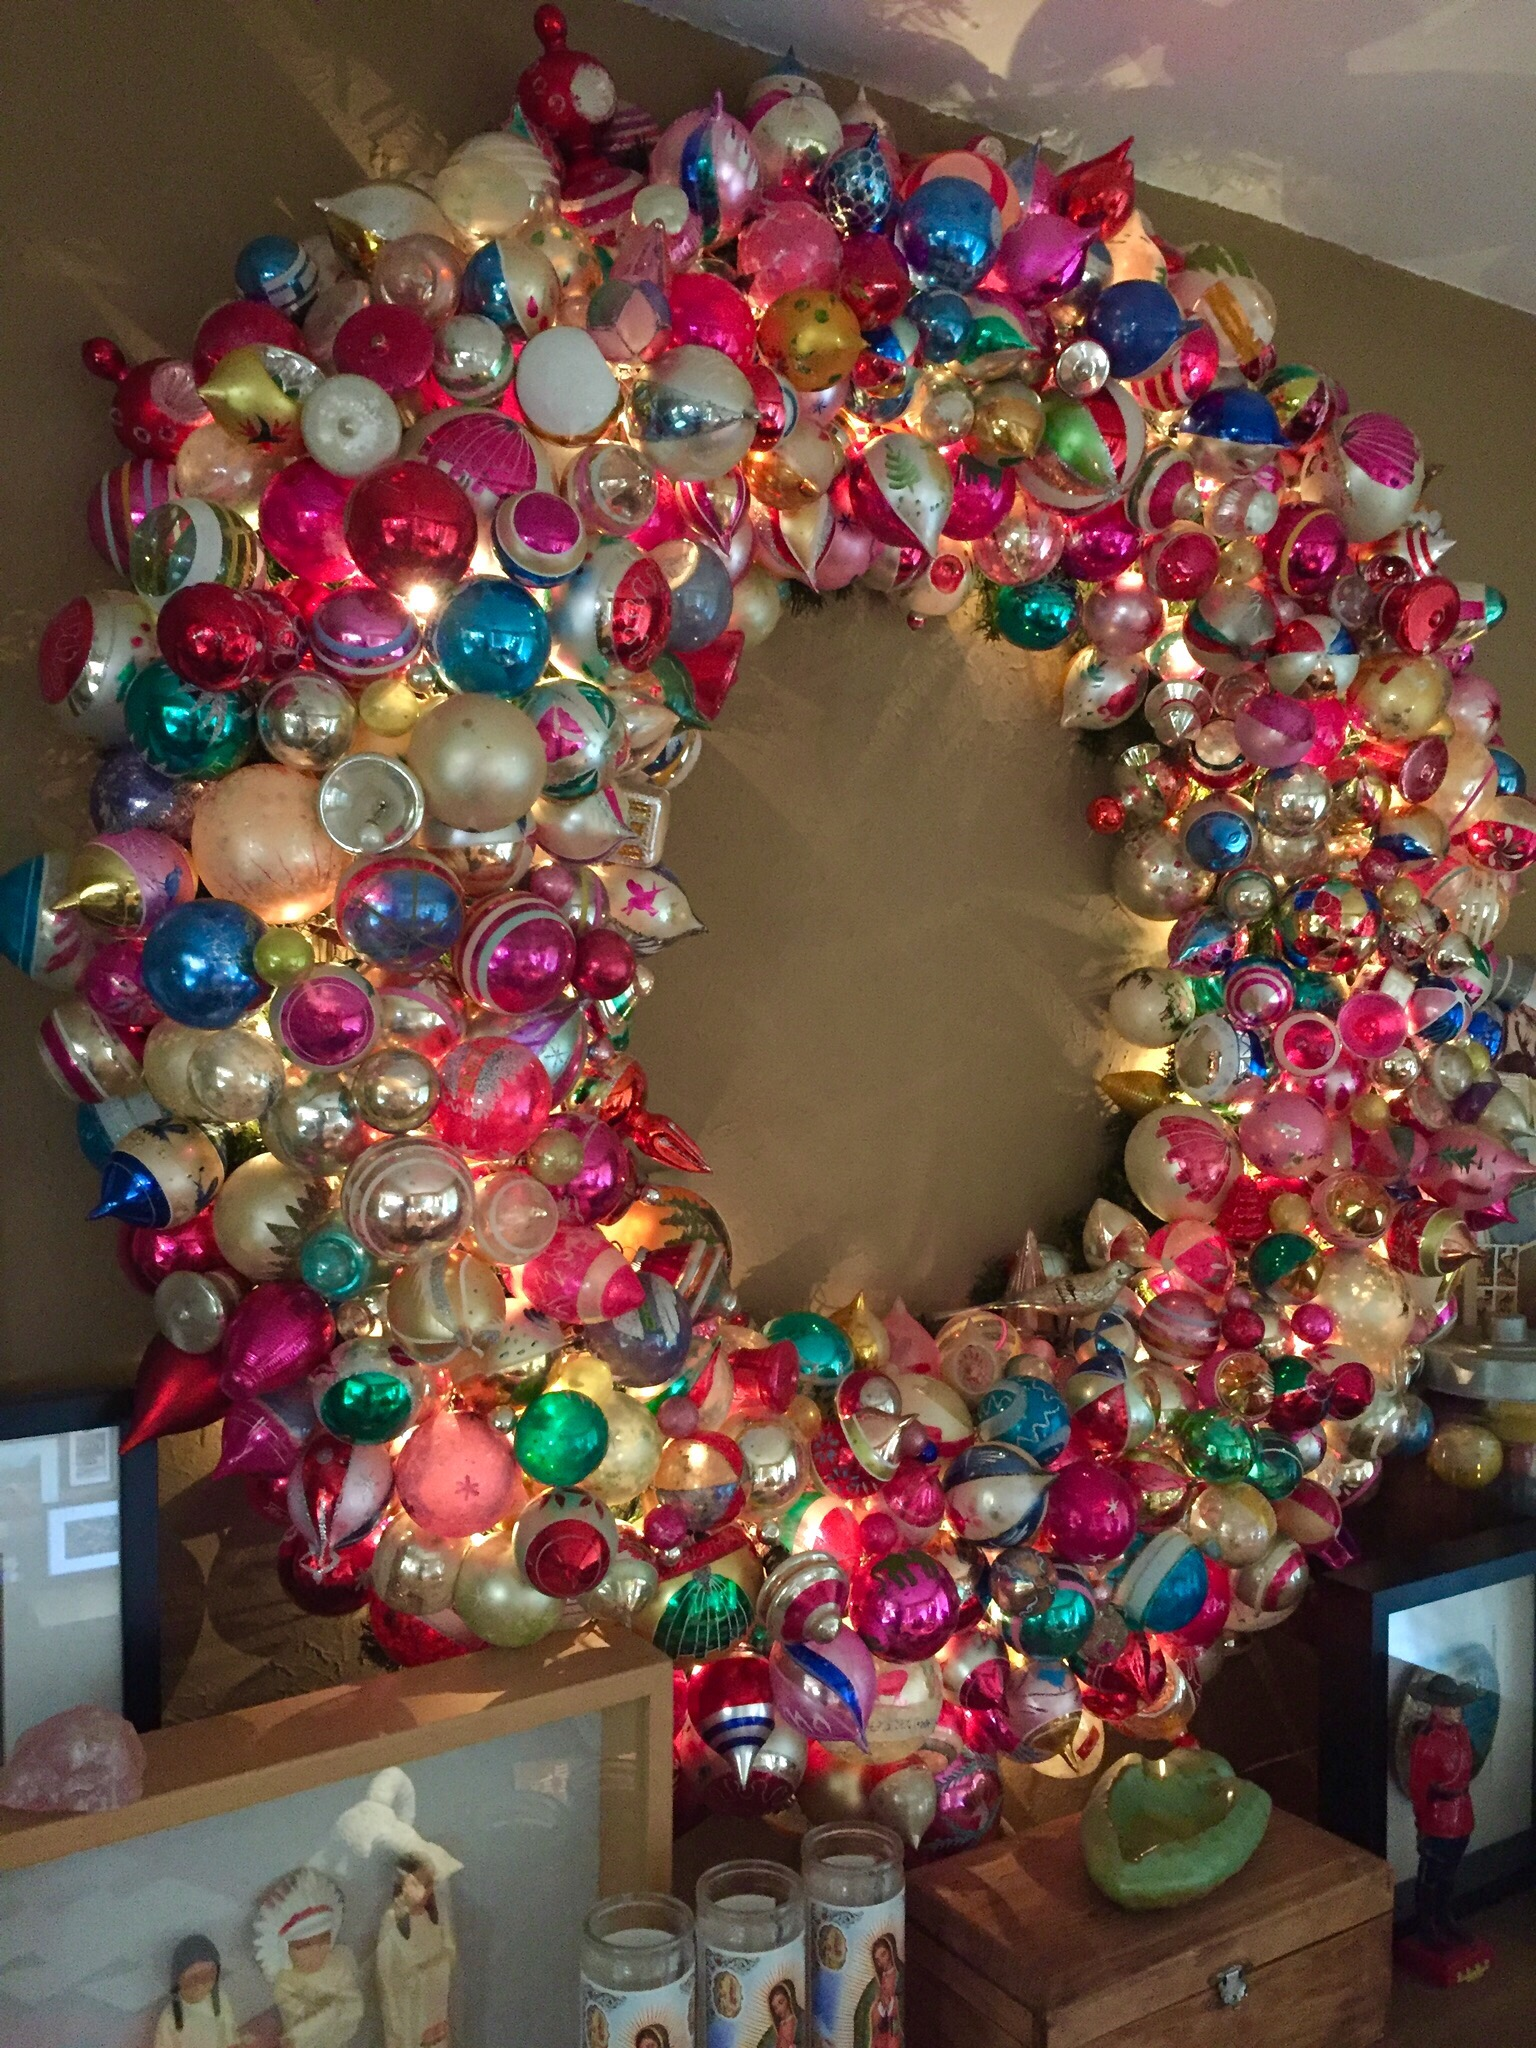 How to Make a Huge Vintage Ornament Wreath #vintagechristmas #diychristmascrafts #christmascrafts #vintageornaments #shinybrites #wreath #vintagewreath